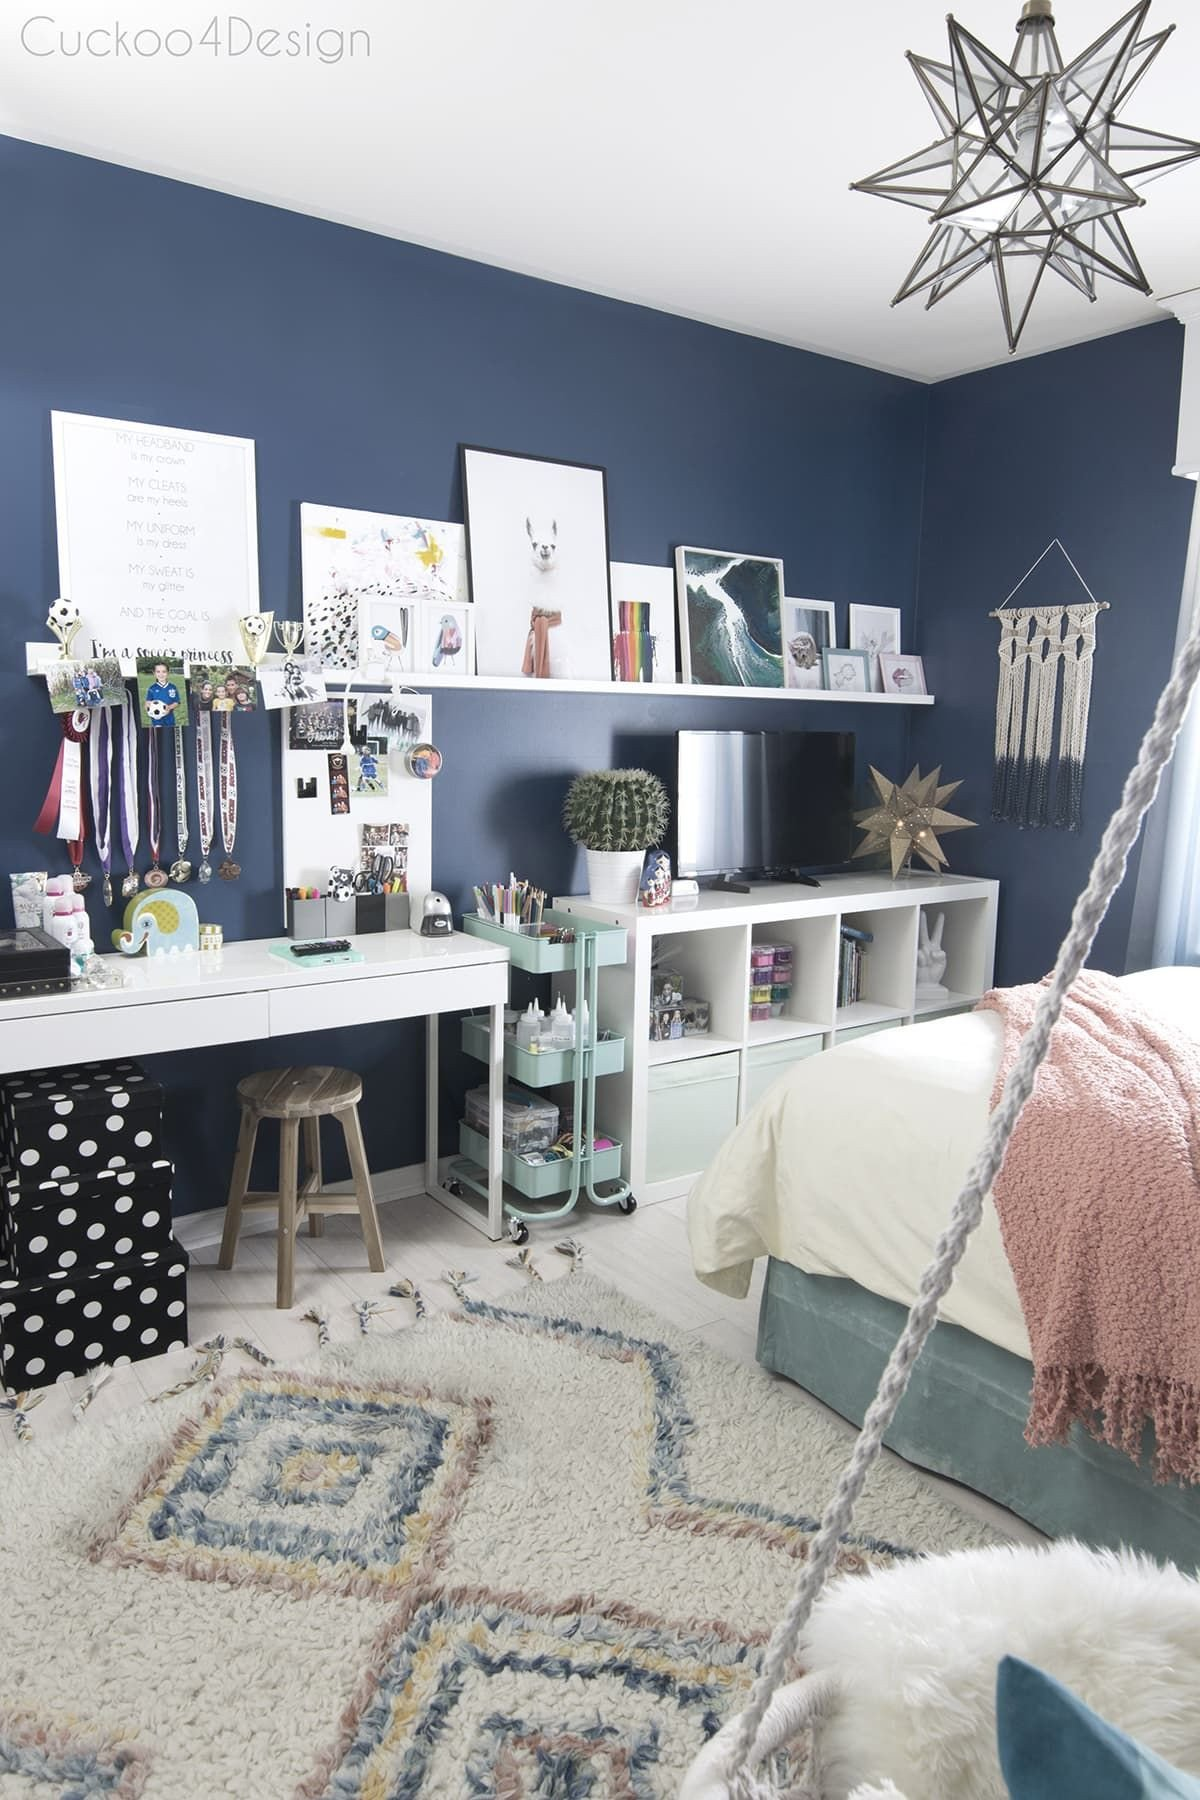 Cute Rugs for Bedroom Inspirational Pin On Cuckoo 4 My Home